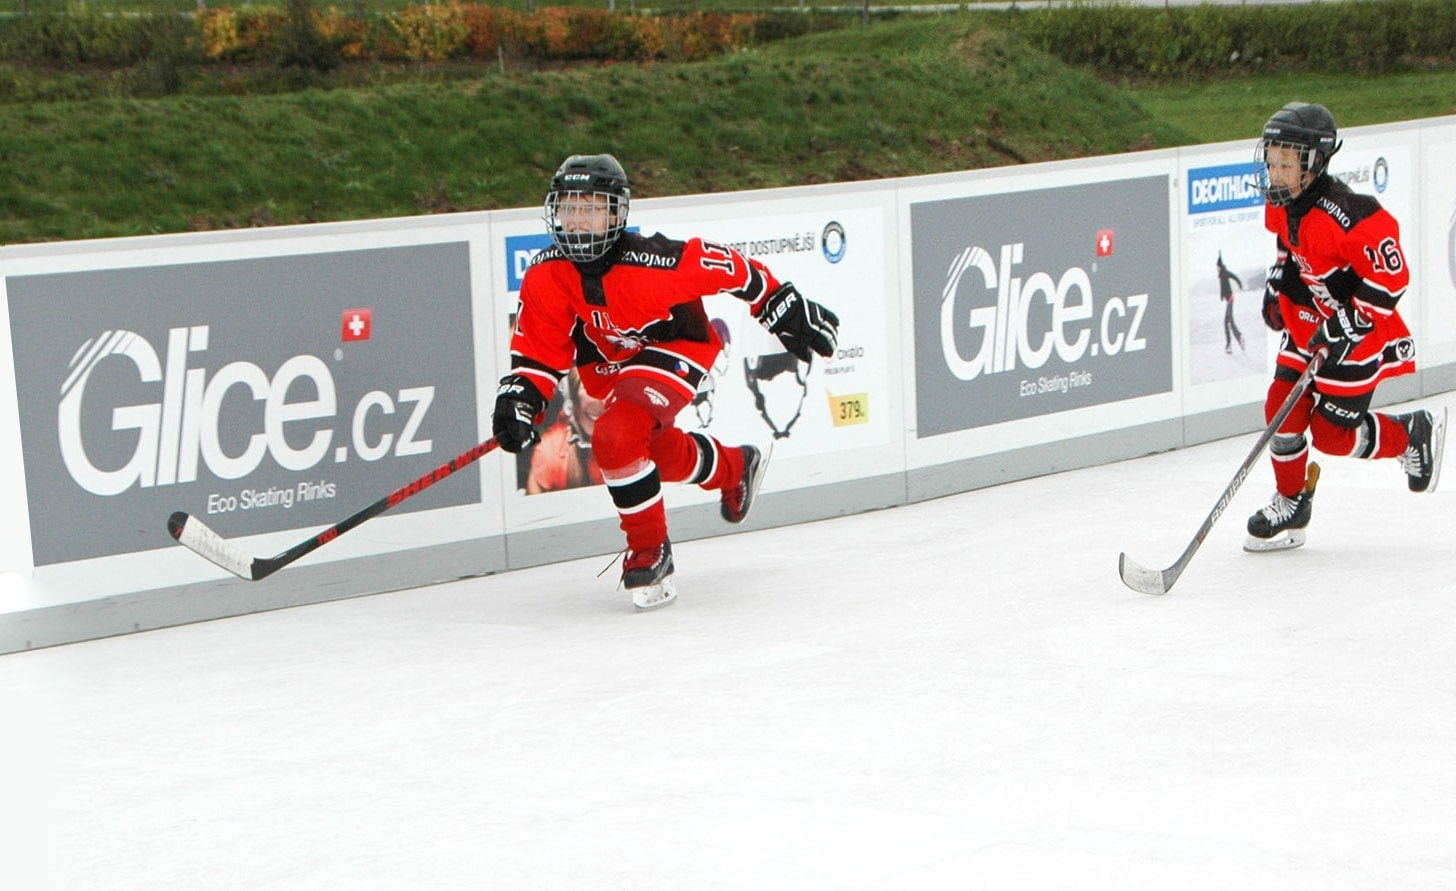 Kids playing hockey on synthetic ice rink surface